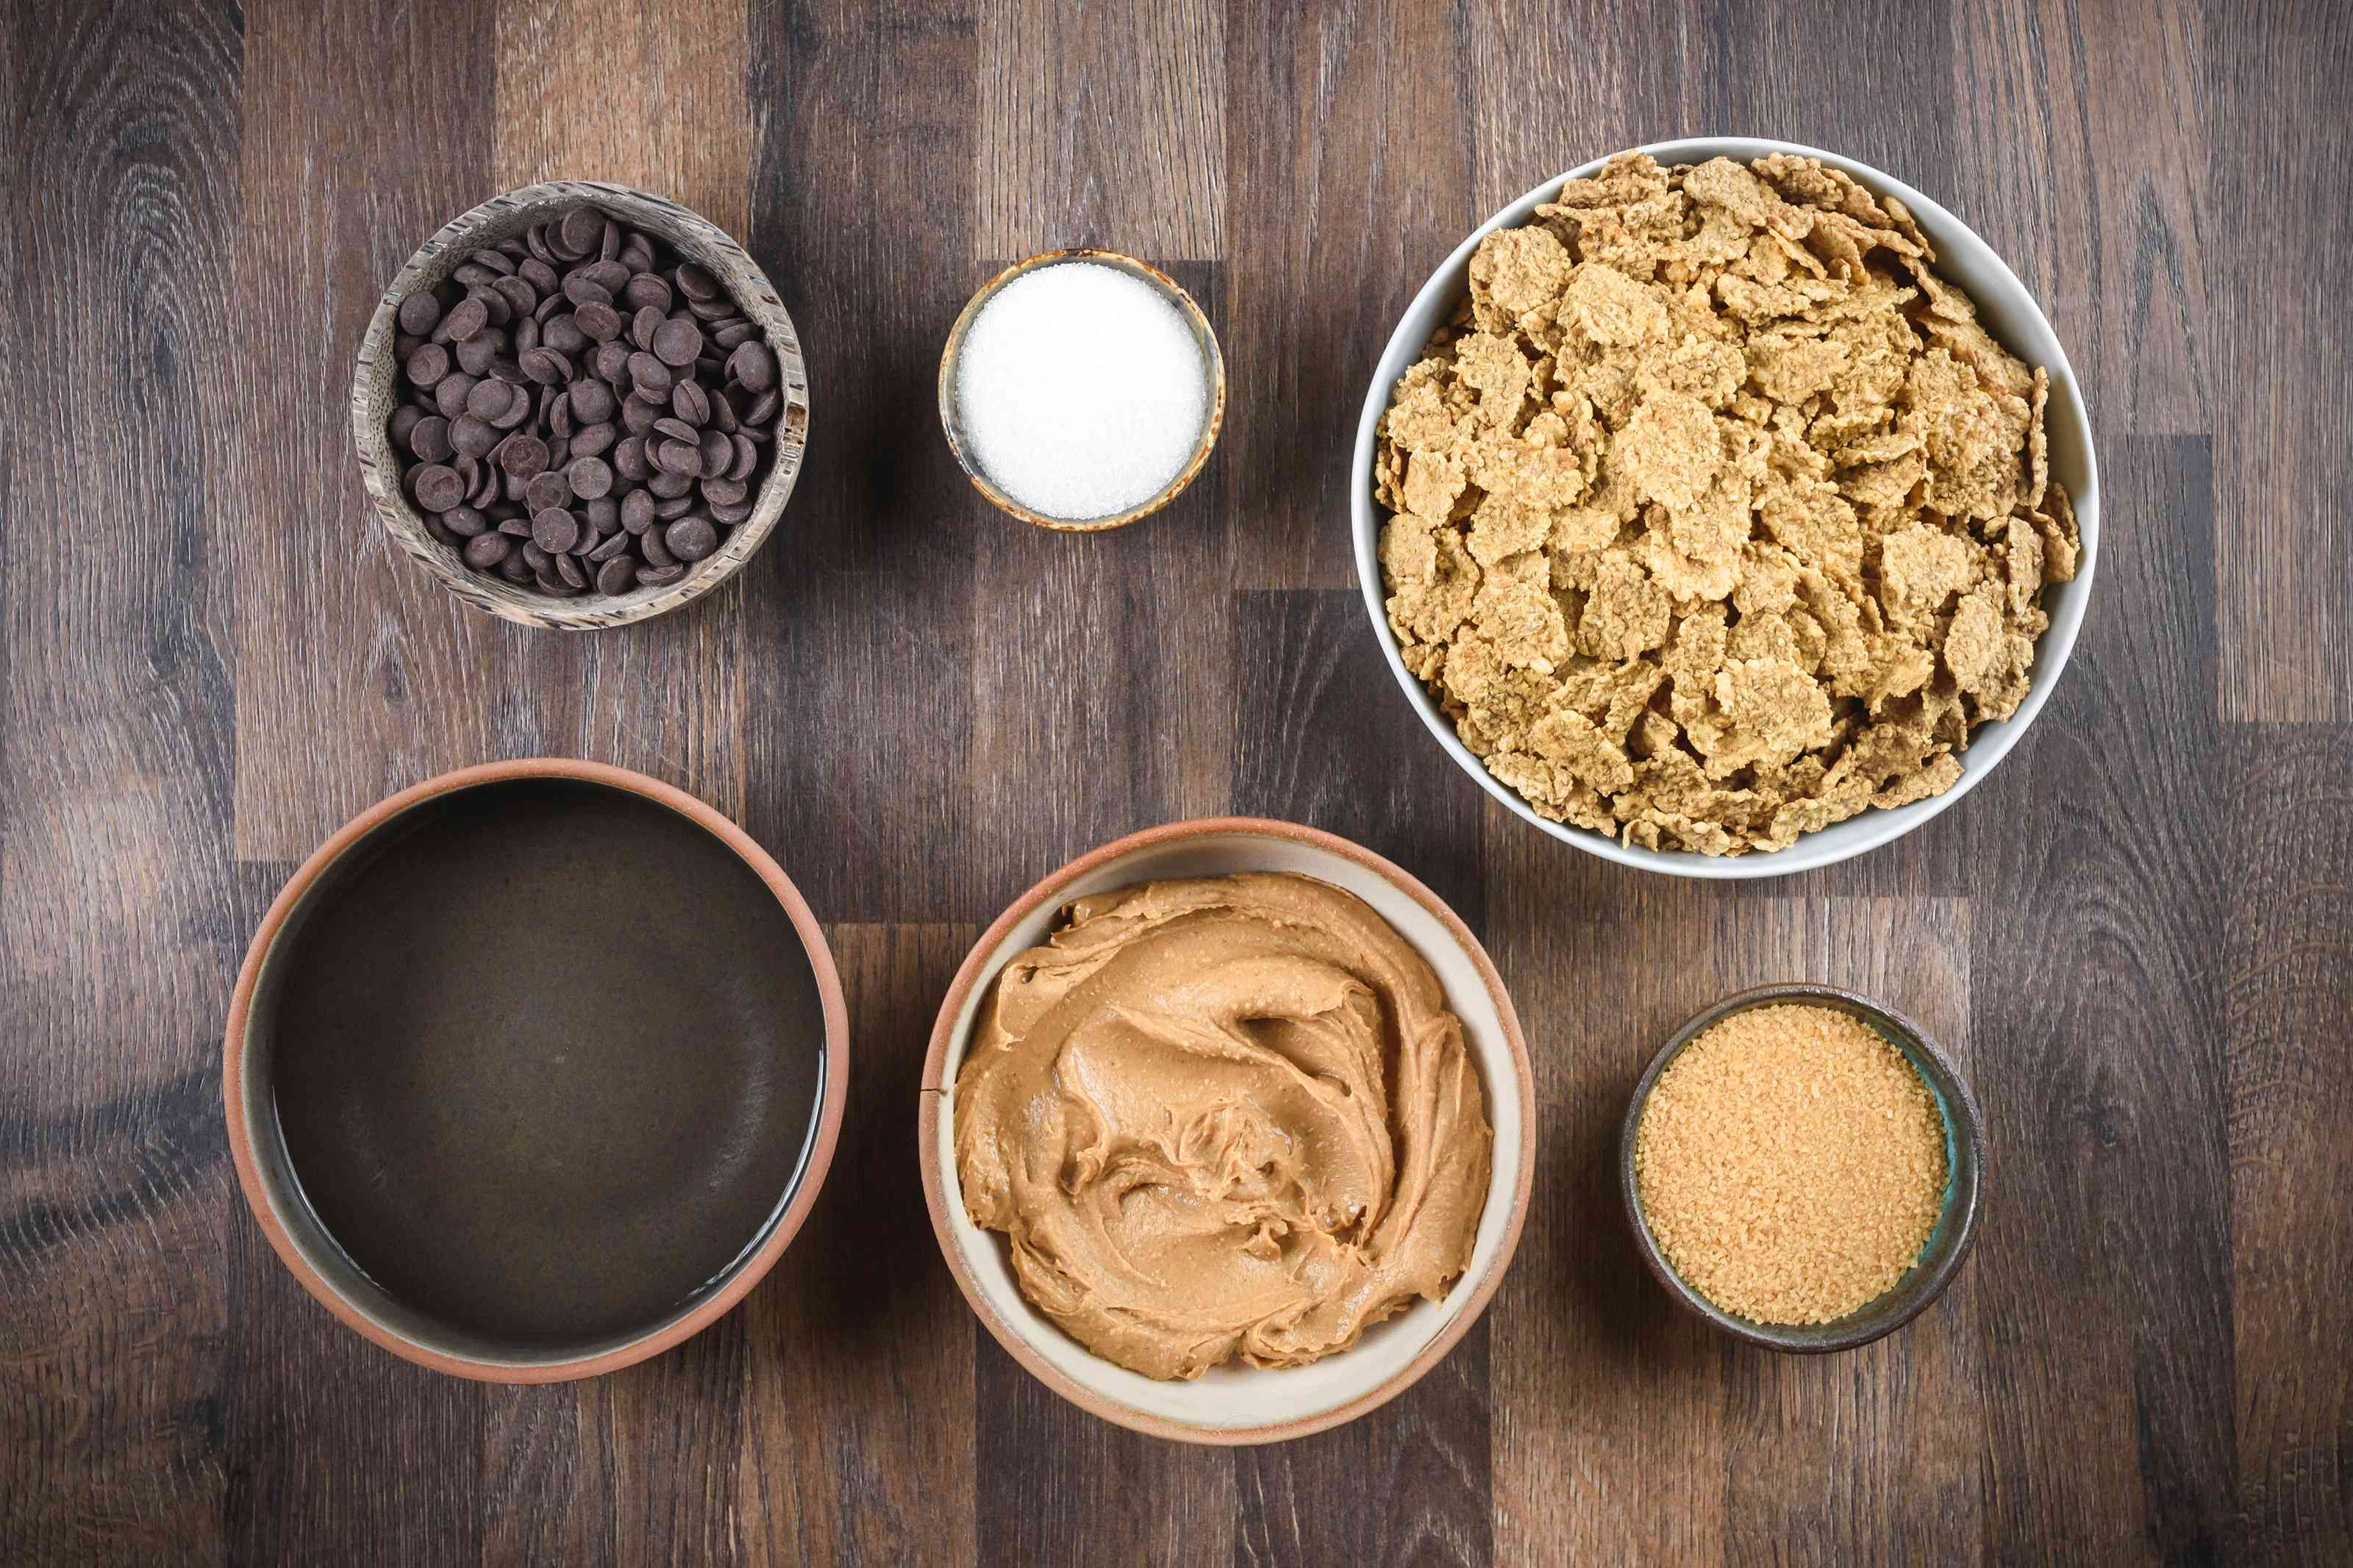 Ingredients for special kay bars